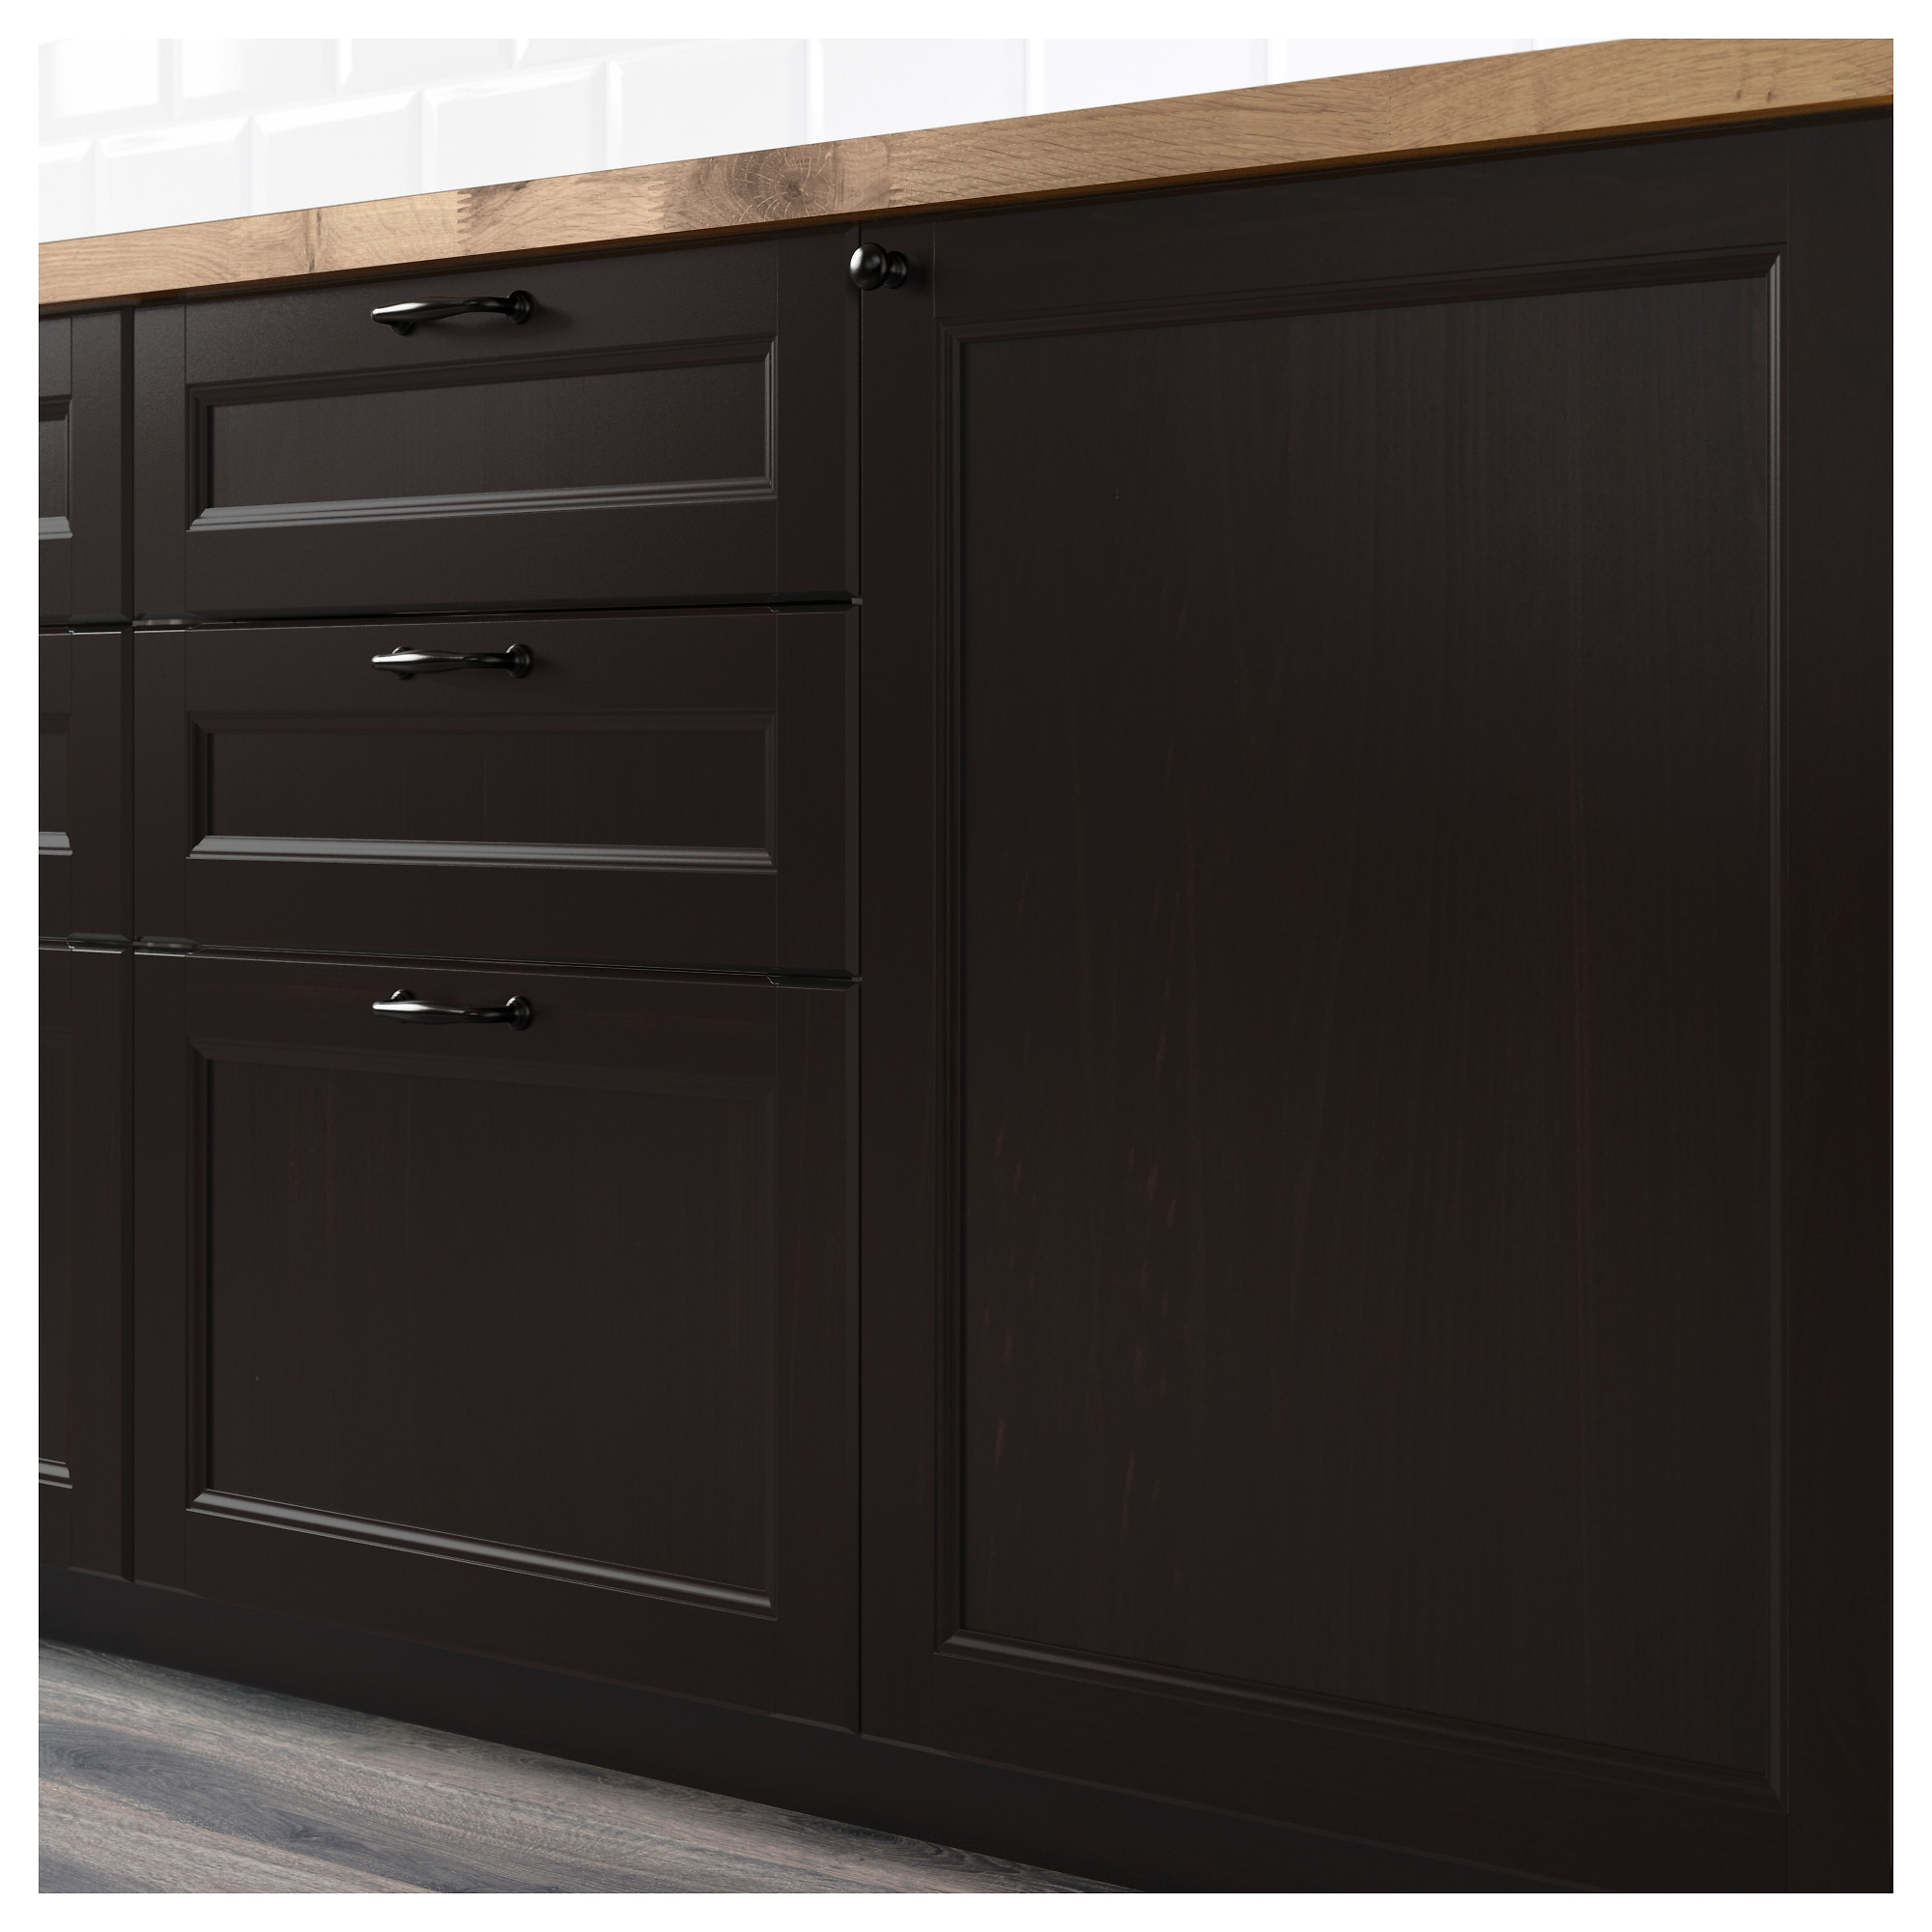 cuisine laxarby ikea gallery of credence verre sur mesure ikea laxarby porte x cm ikea with. Black Bedroom Furniture Sets. Home Design Ideas